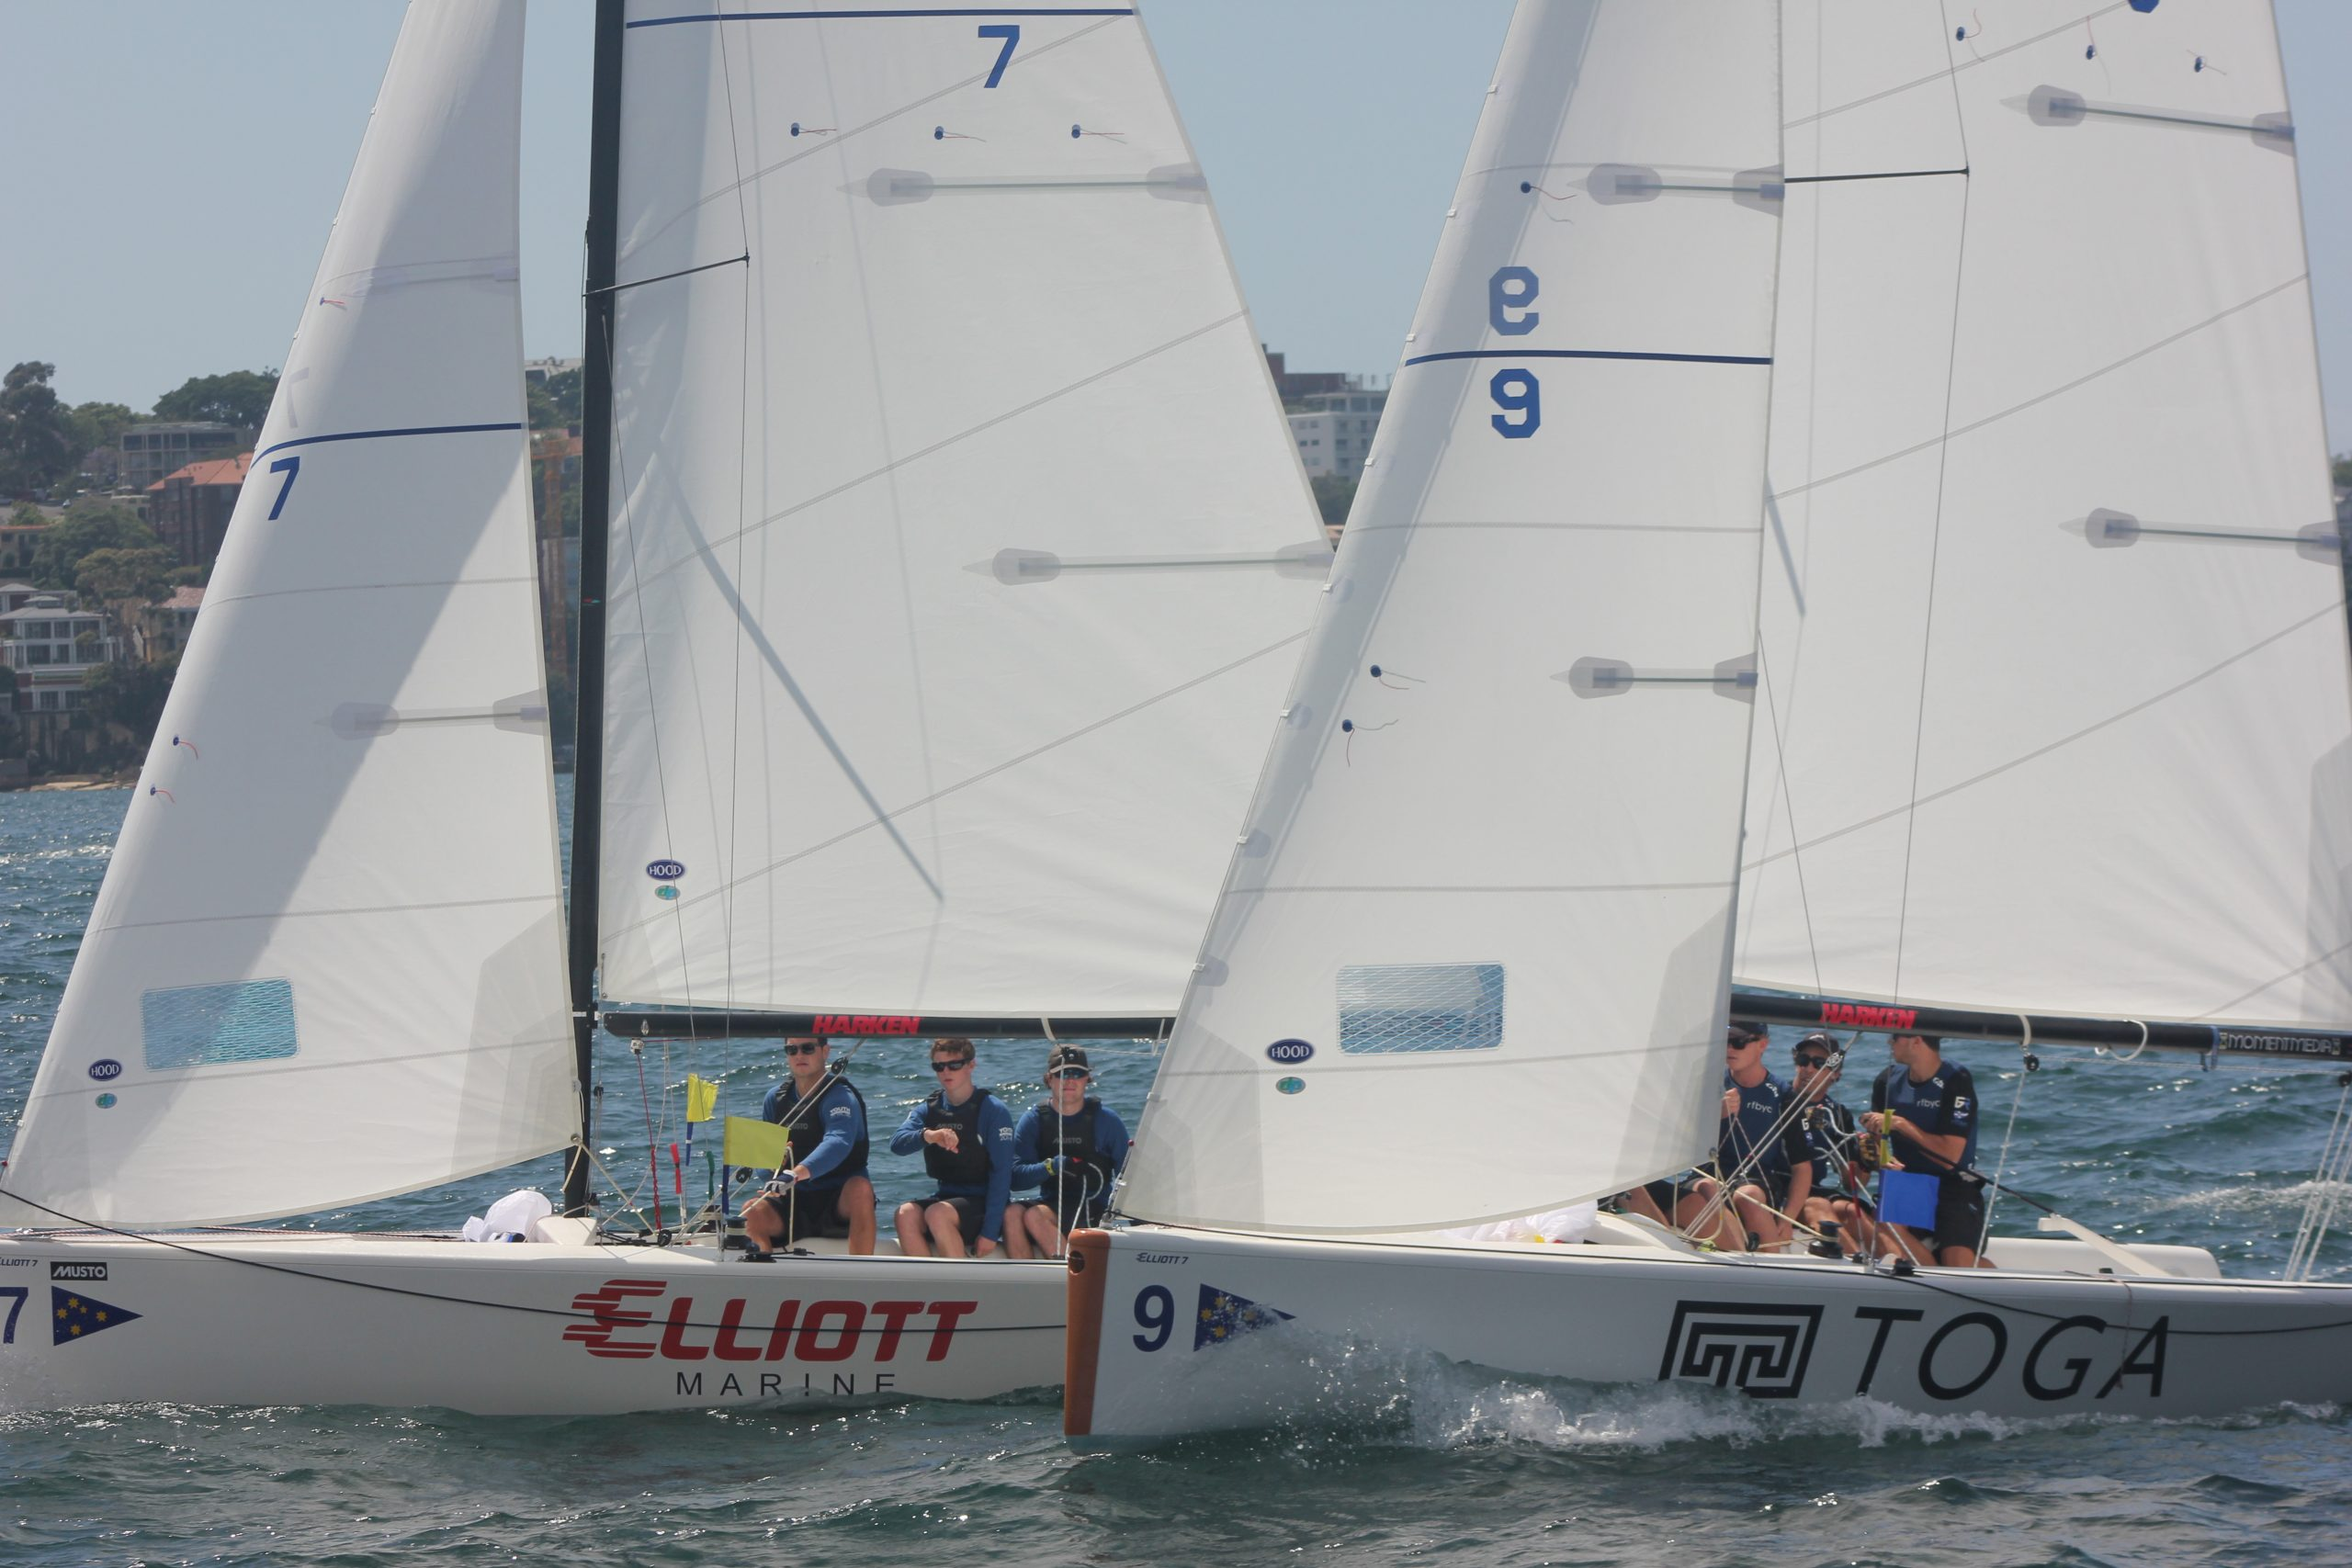 Close racing in identical boats gives the CYCA great sail training